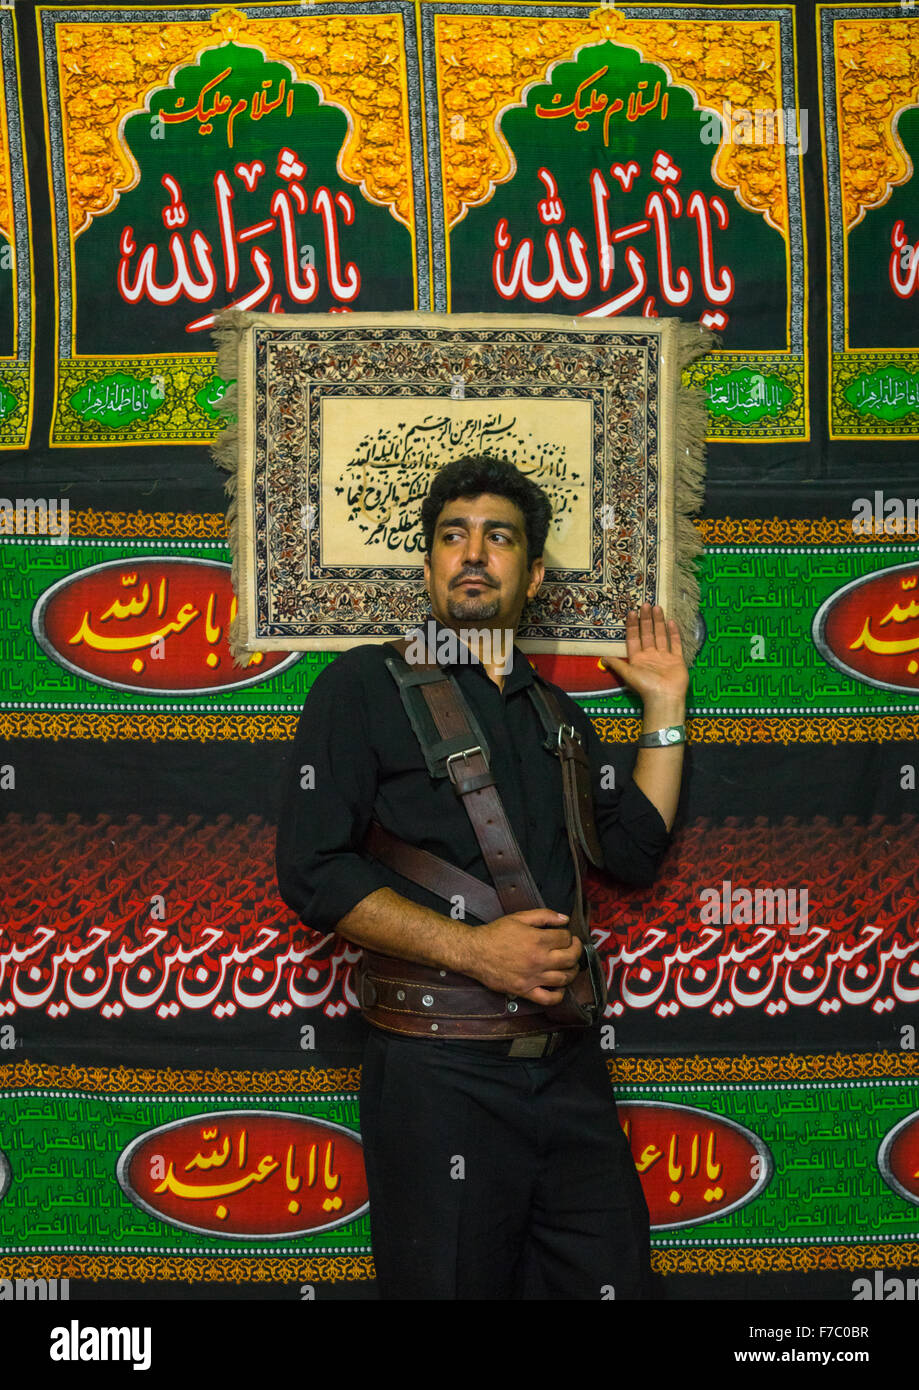 Iranian Shiite Alam Porter During Chehel Menbari Festival On Tasua Day To Commemorate The Martyrdom Of Imam Hussein, - Stock Image